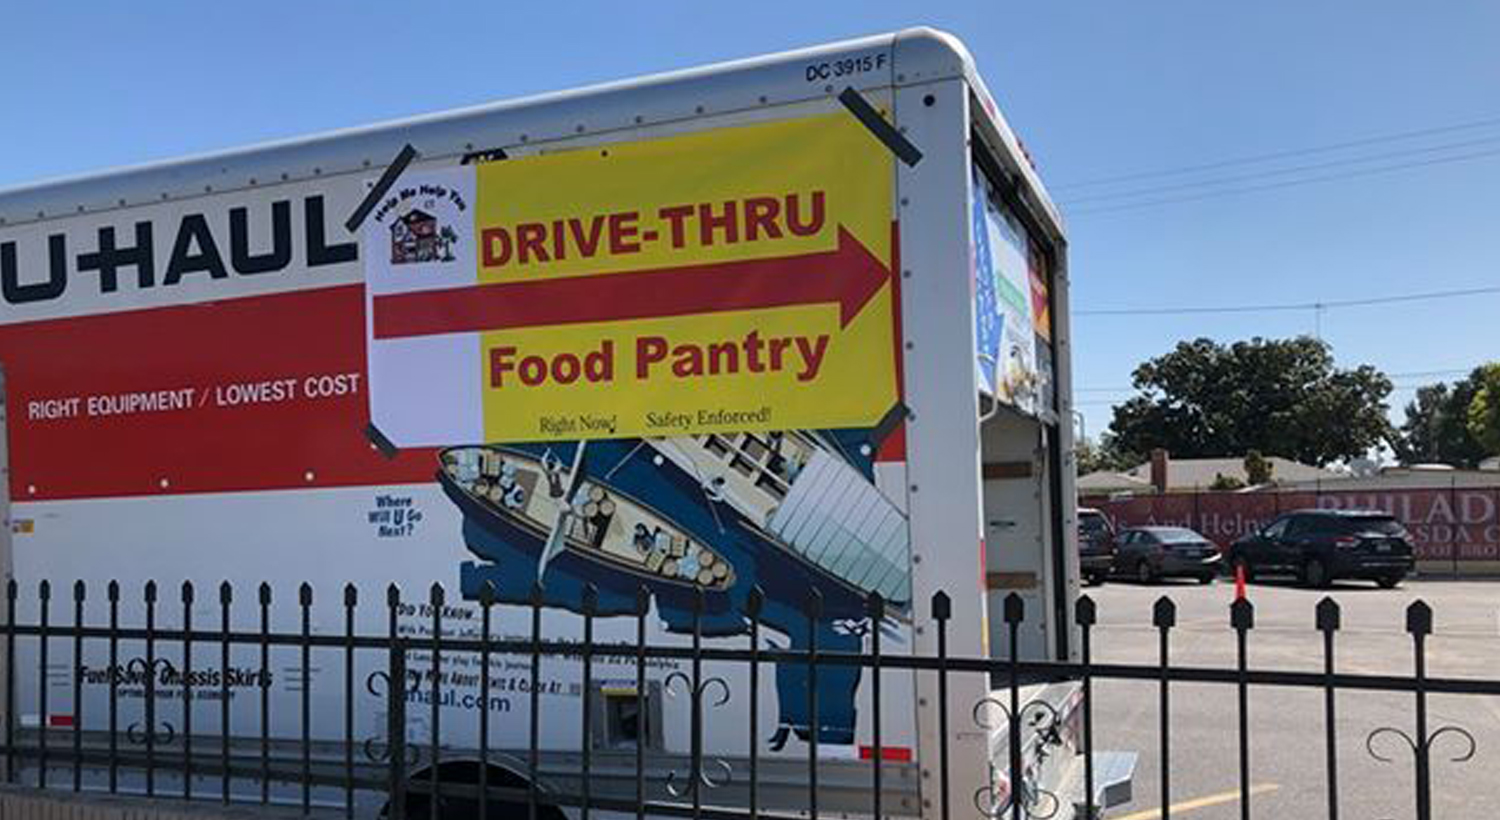 drive thru food pantry truck banner